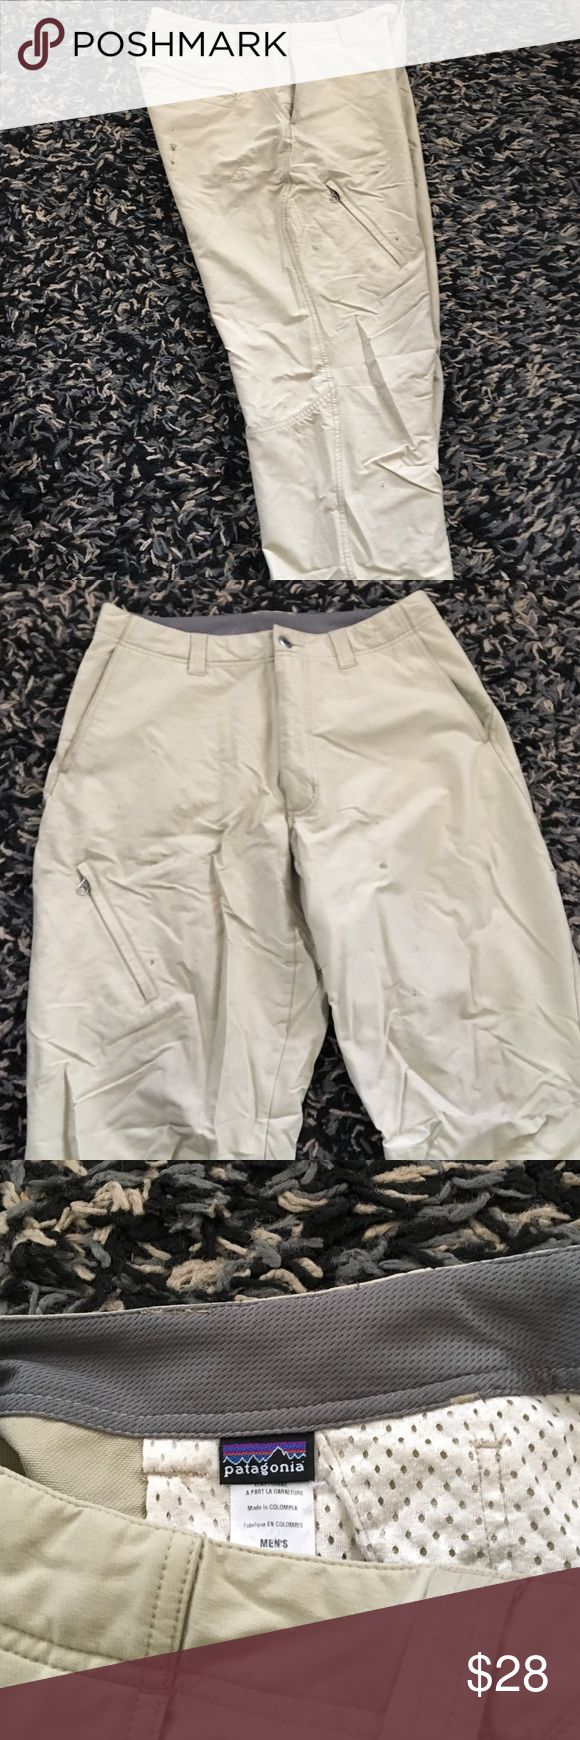 Patagonia climbing/hiking pants 94% Nylon 6% Spandex pants. They have a few seasons under their belt, and some trail stains but they are sturdy and have no rips. Patagonia Pants